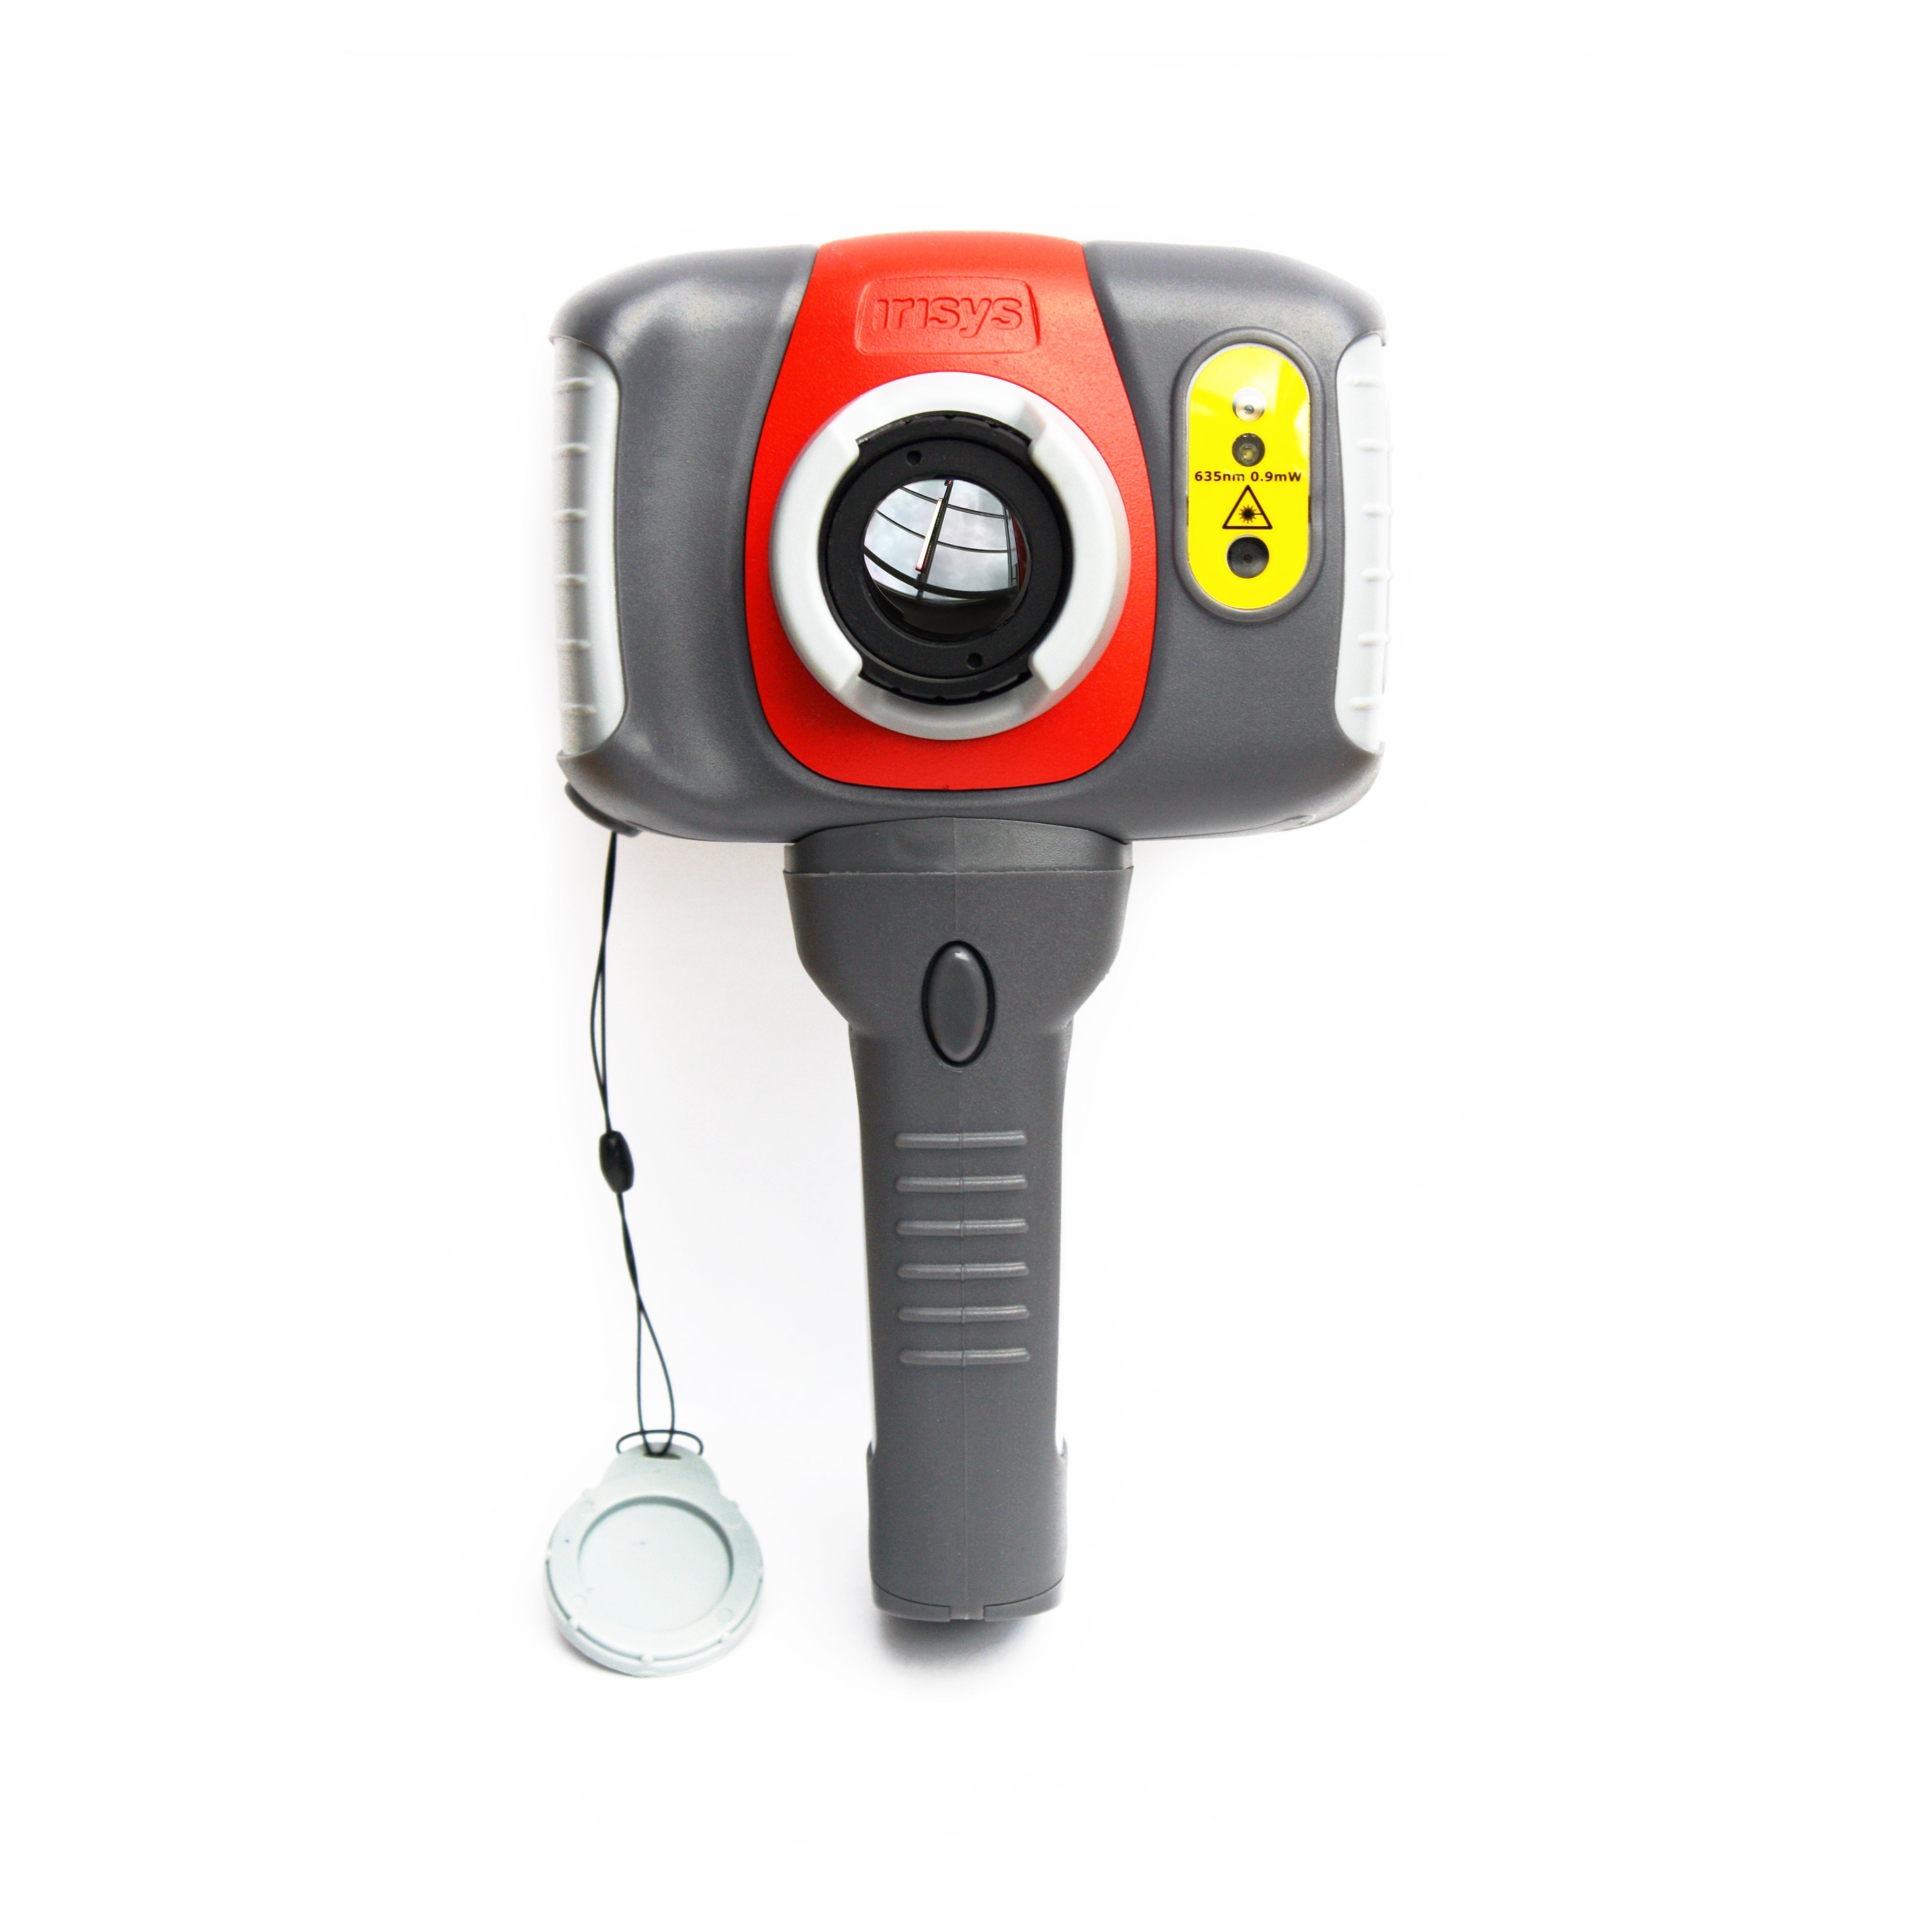 ir32DS high resolution thermal camera